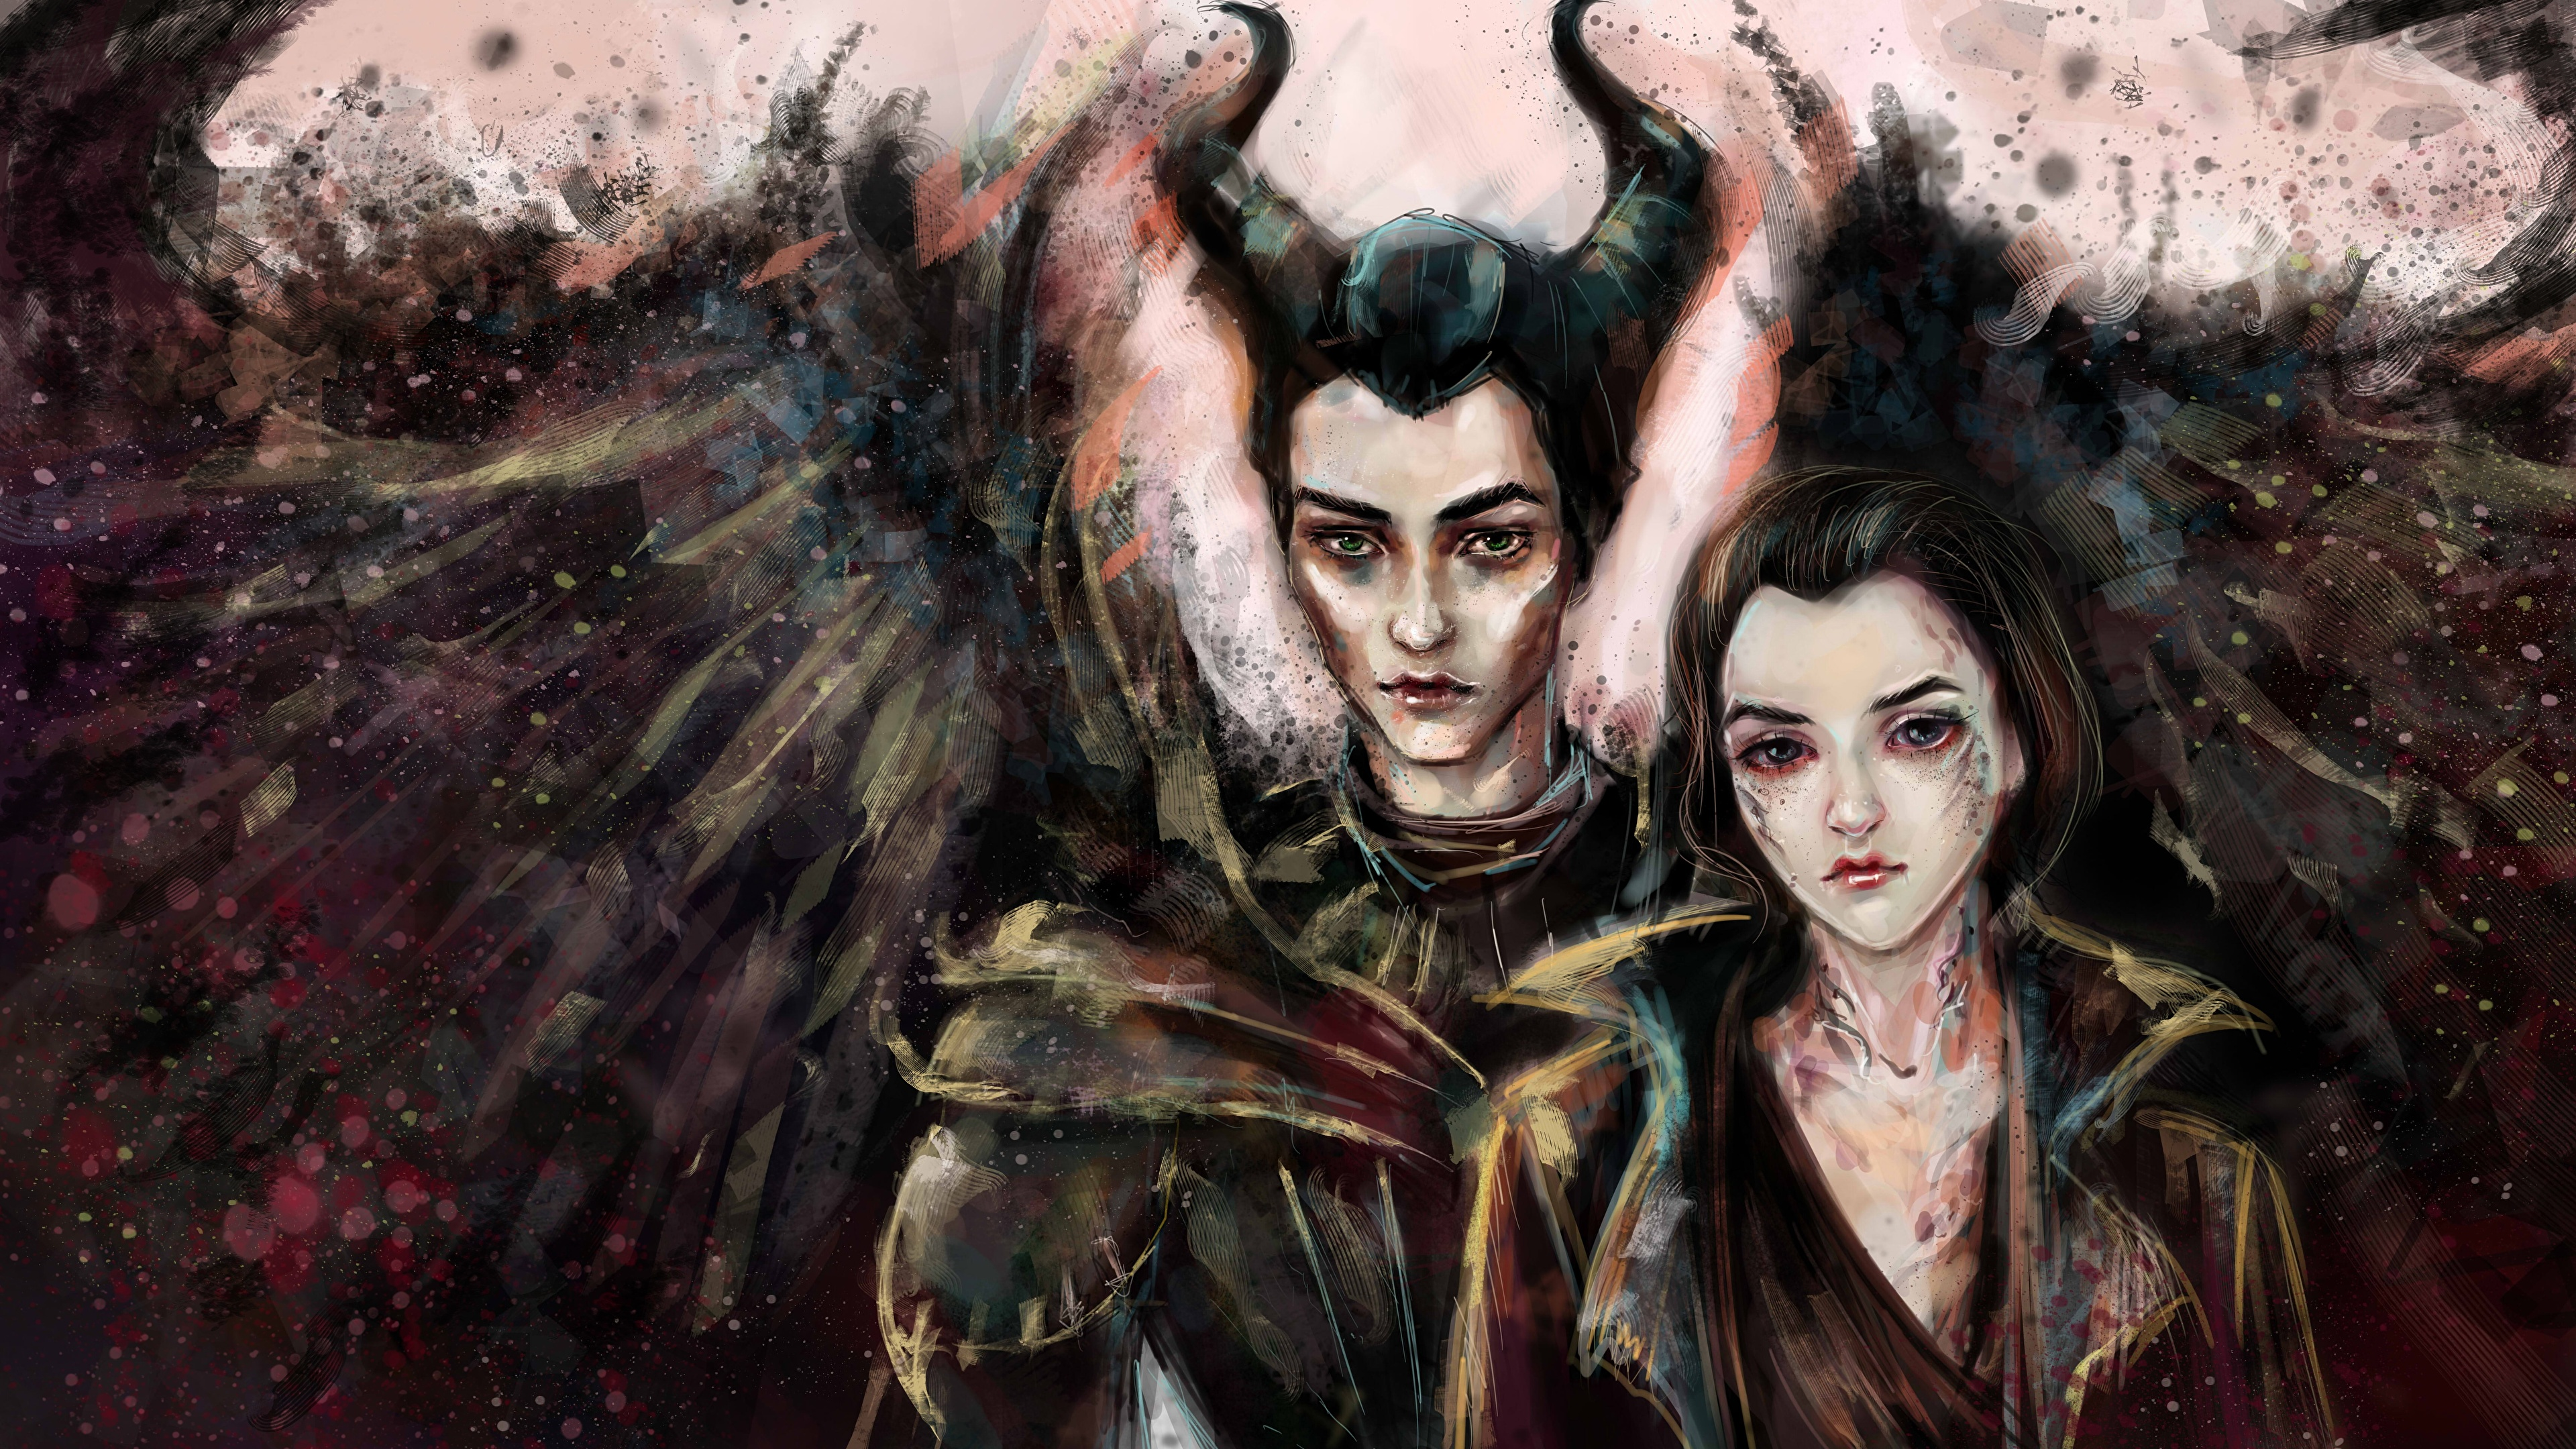 Desktop Wallpapers Horns Wings Maleficent And Diaval 2 3840x2160